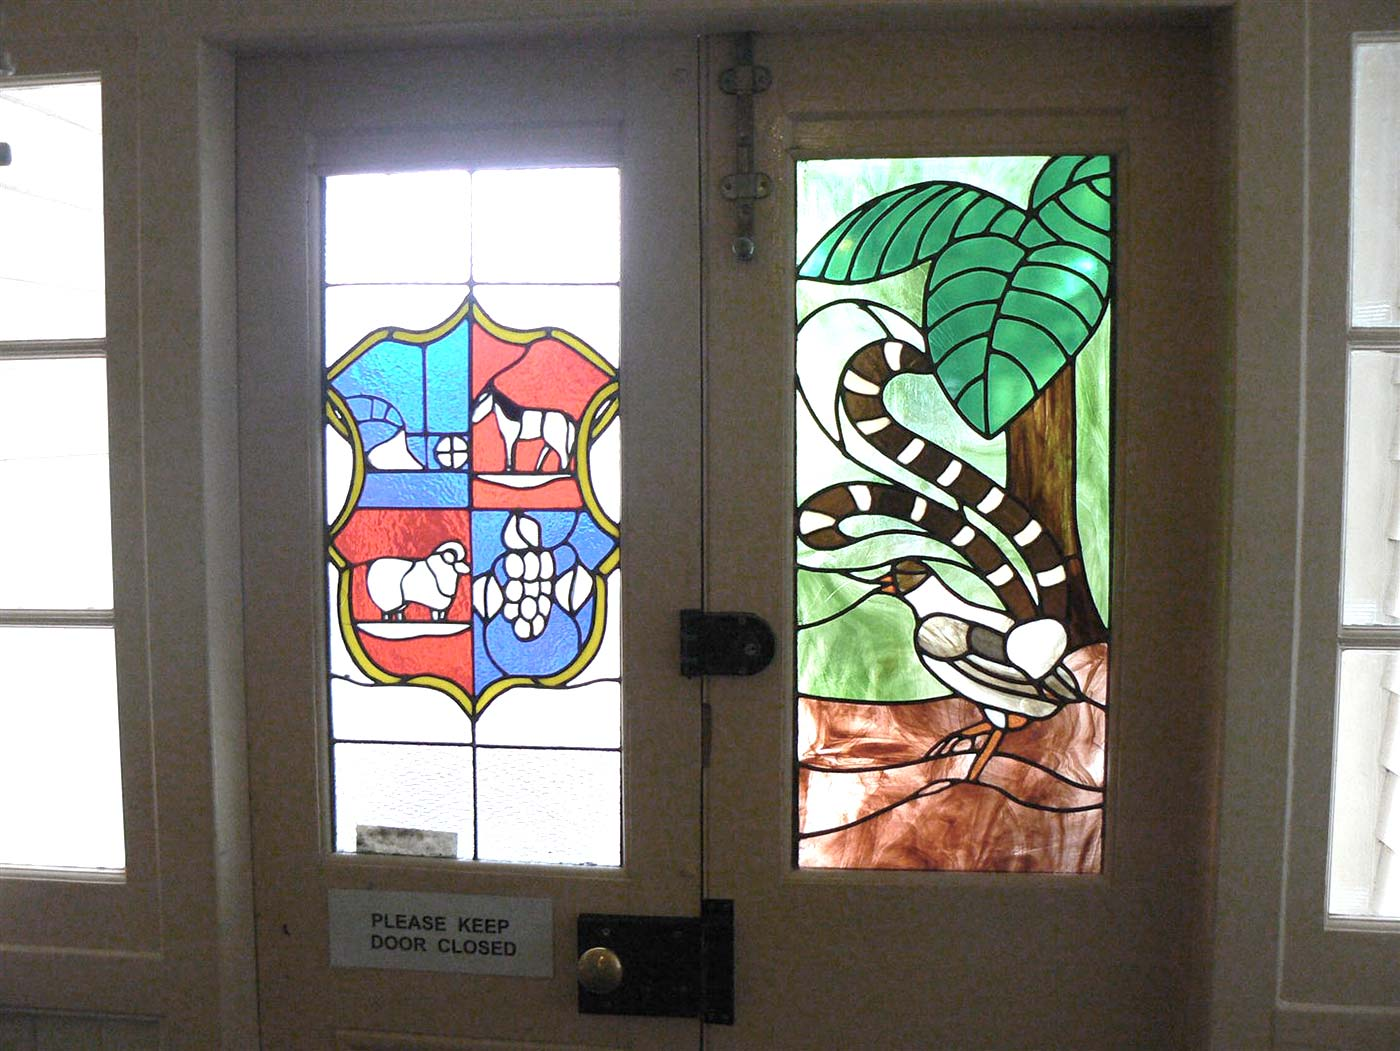 Leadlight windows featuring a design in the style of a coat of arms on one side and a forest scene with a bird on the other.